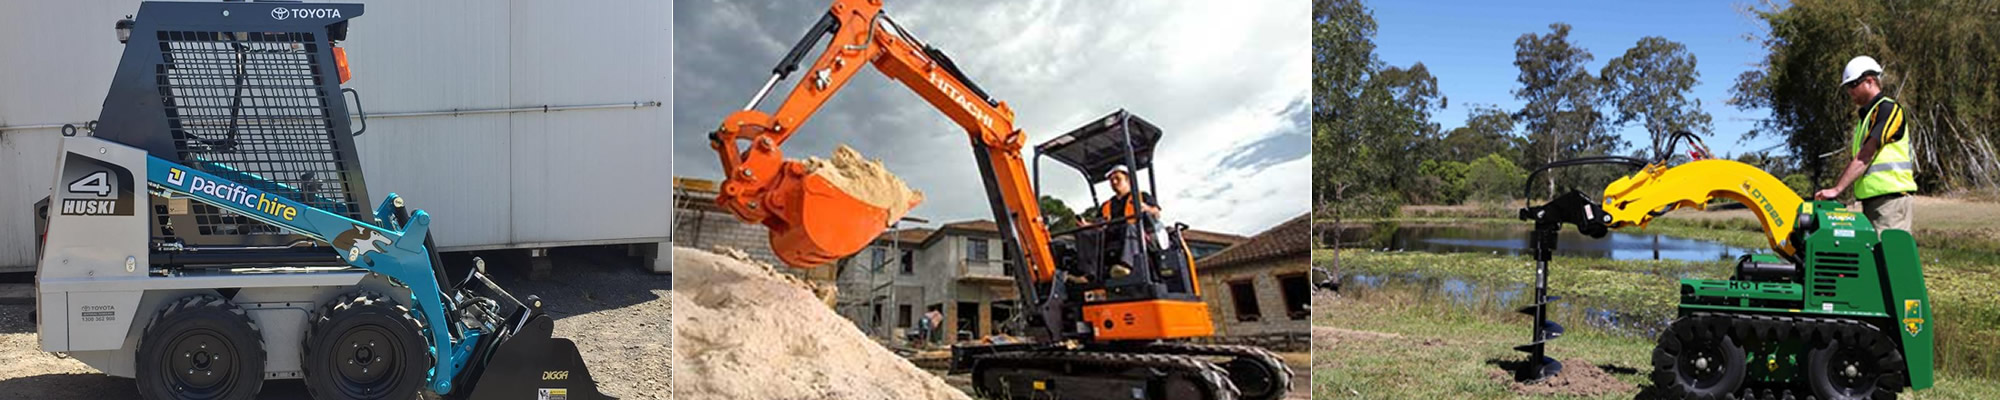 Landscaping Equipment Melbourne